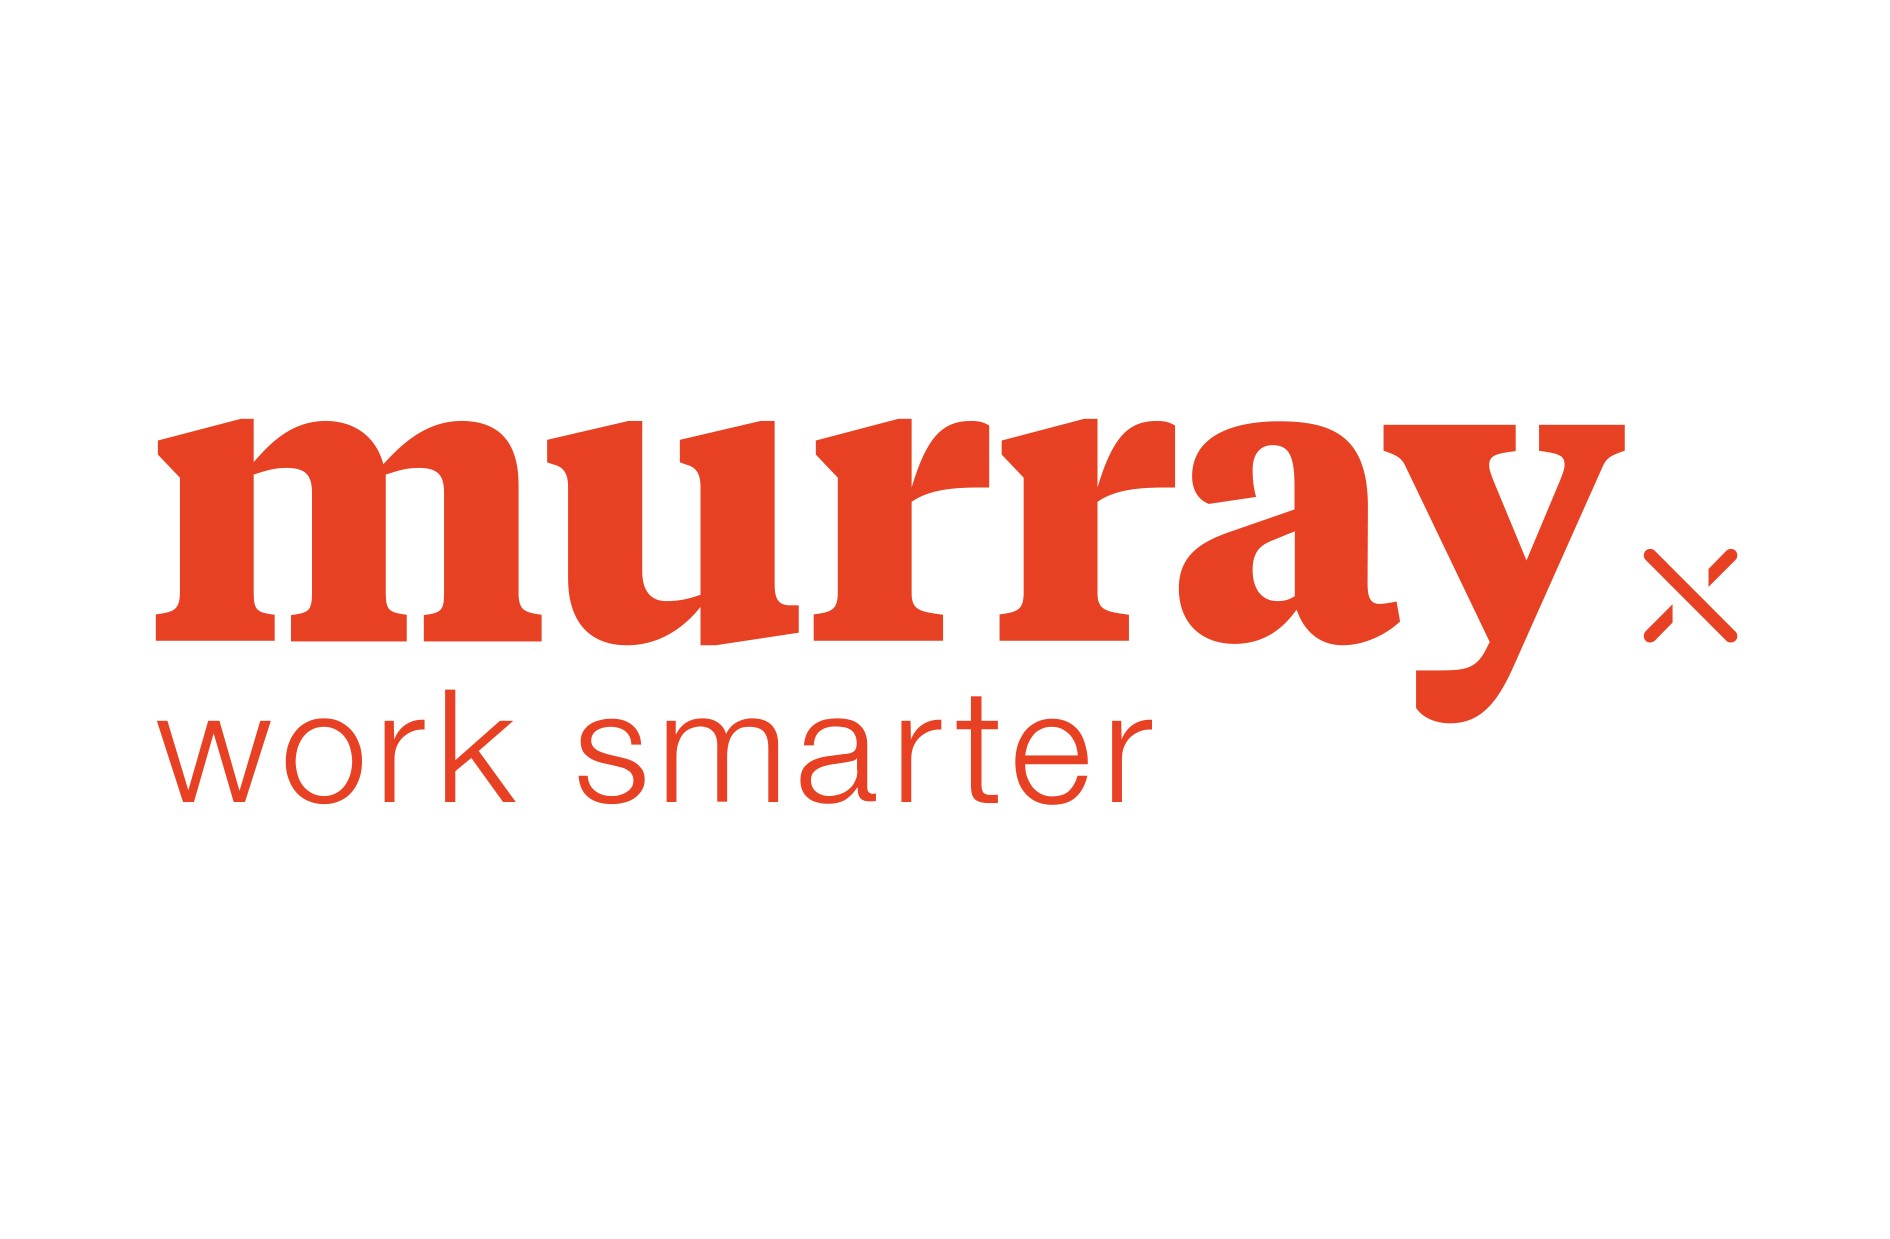 Murray Uniforms looks at several aspects where culture affects the workplace as well as investing in company culture and working from home